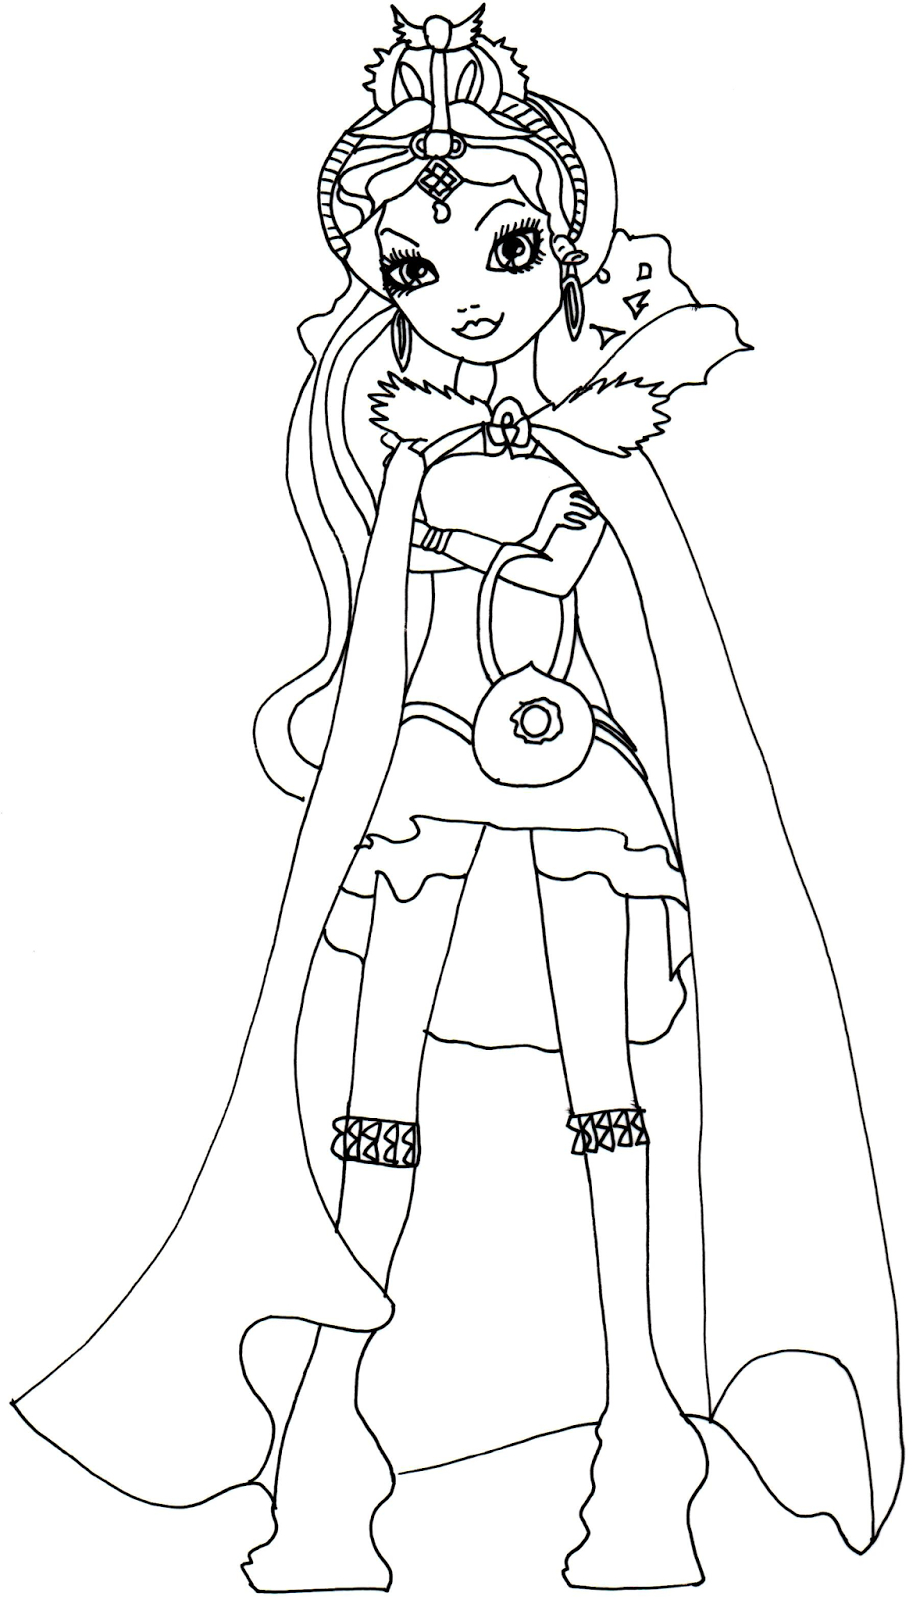 Ever after High Coloring Pages  Printable 19c - To print for your project